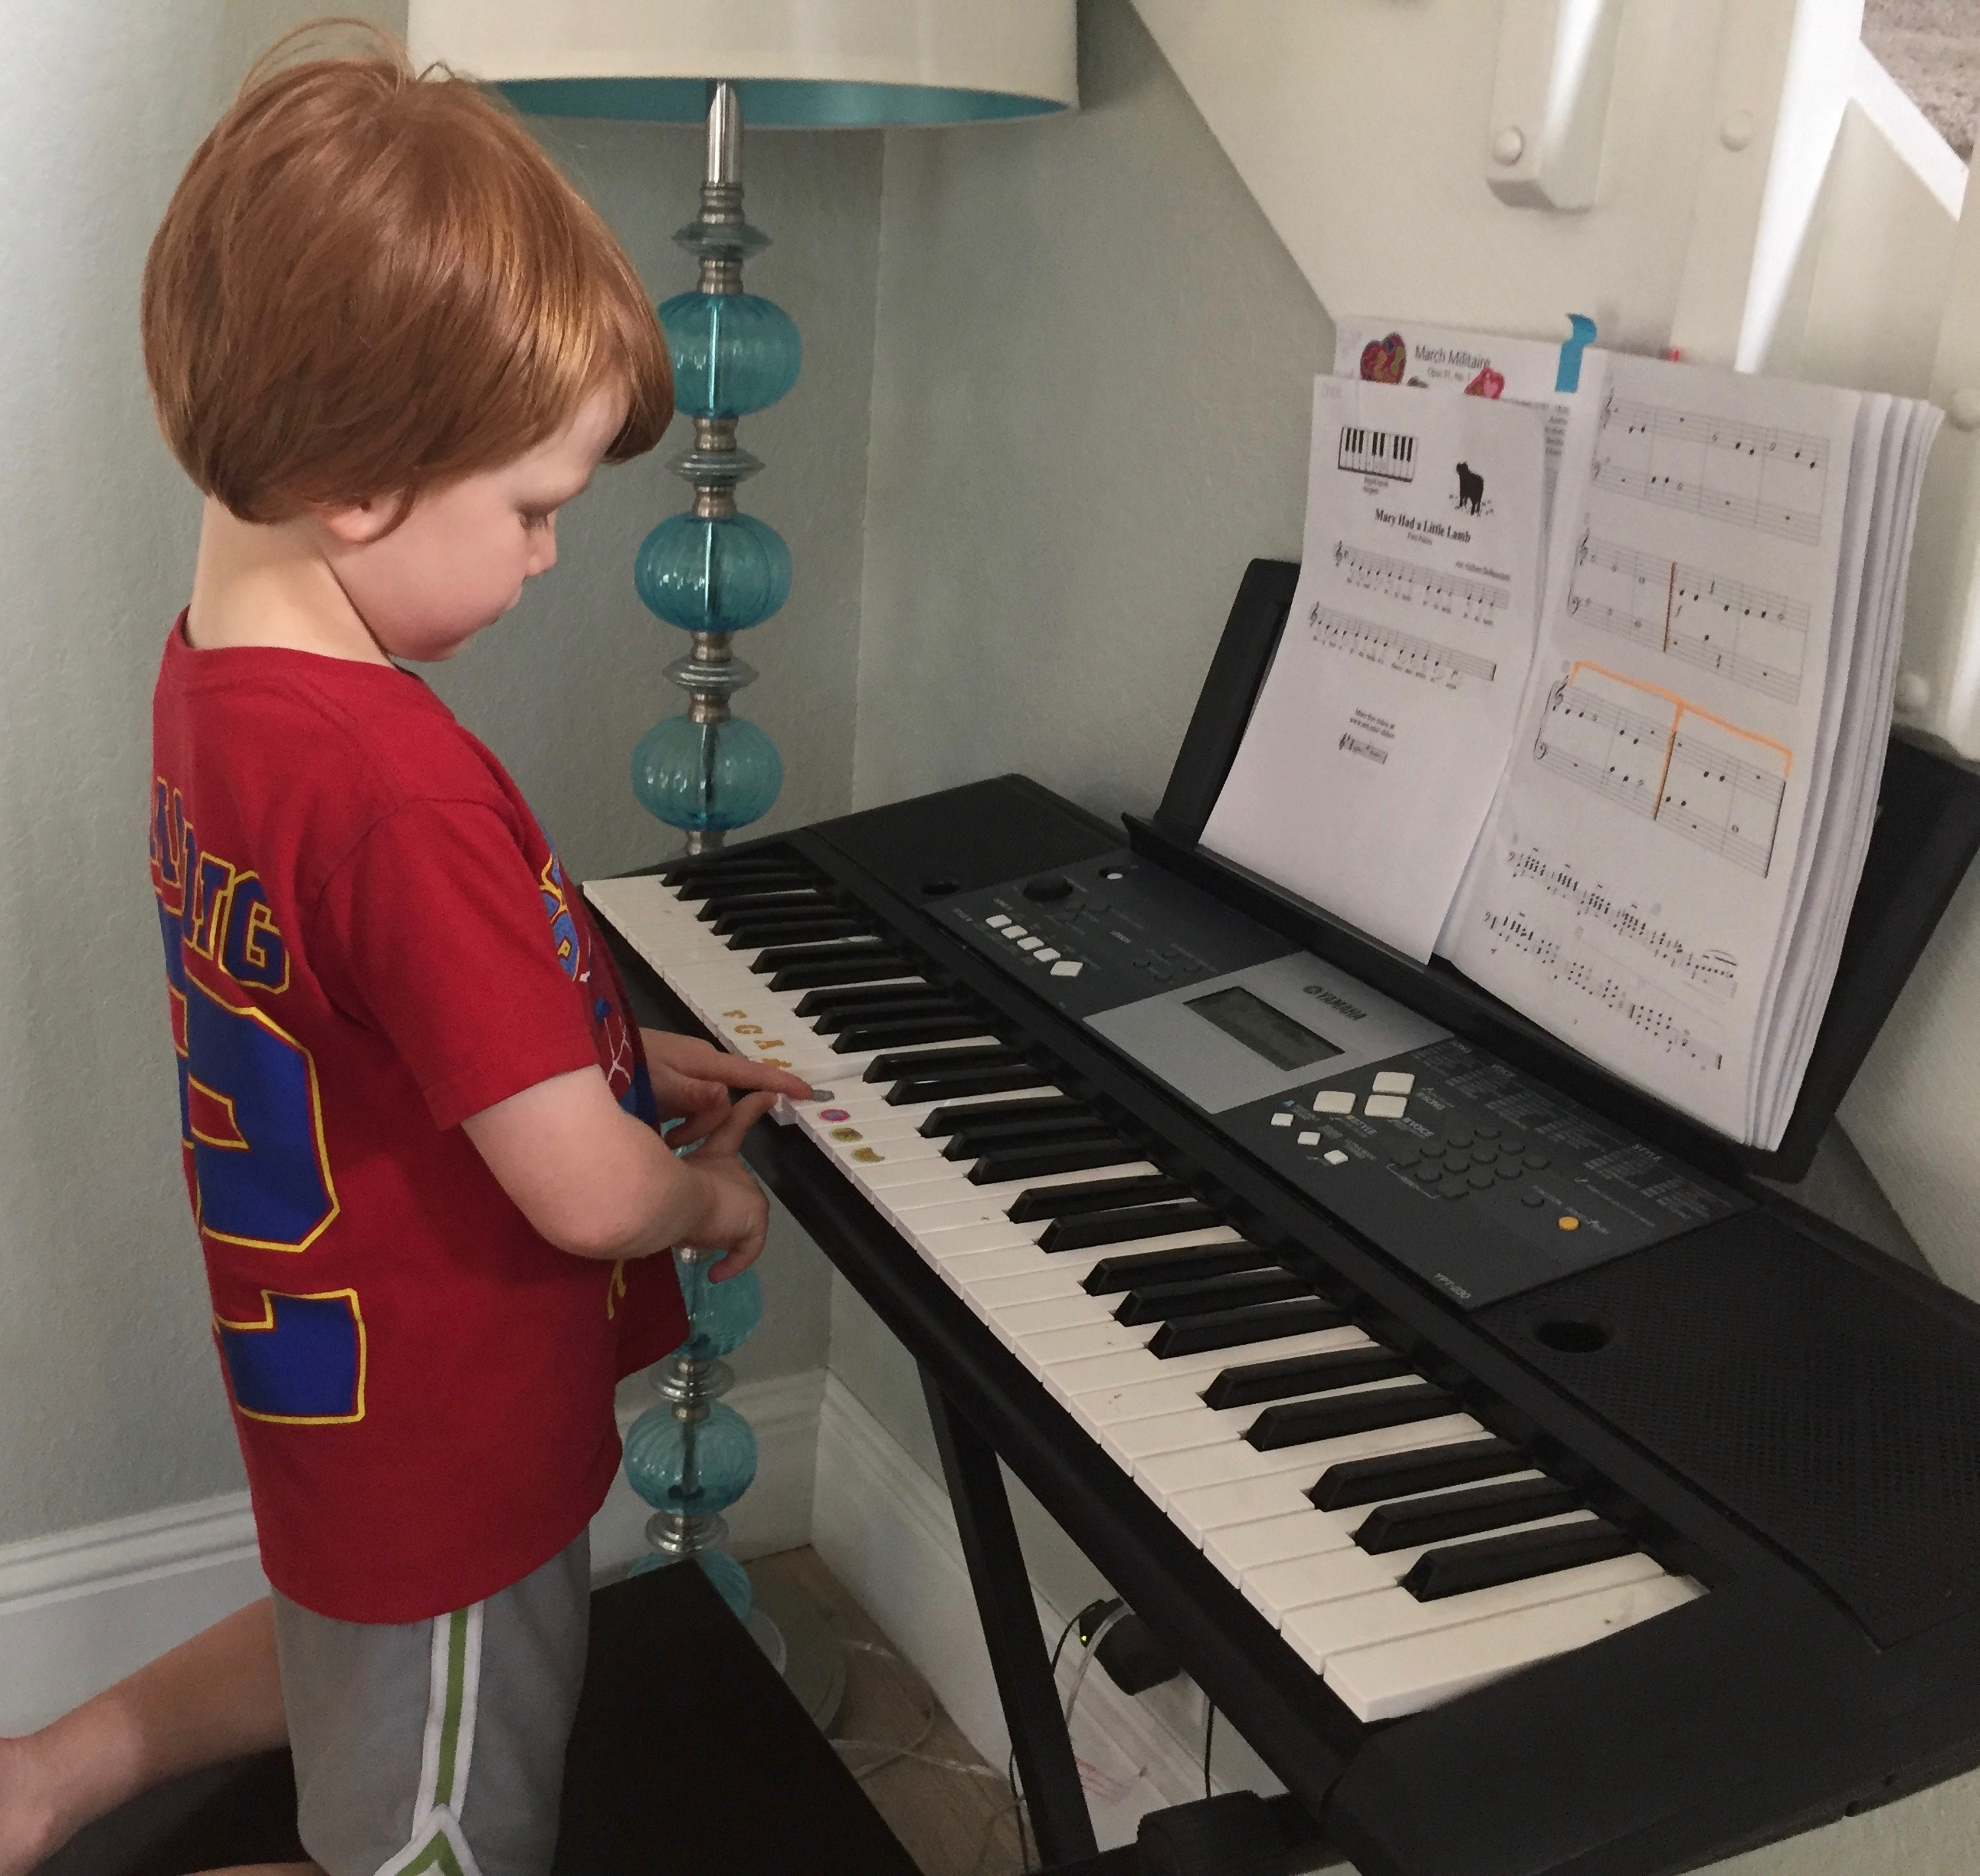 Chase playing keyboard